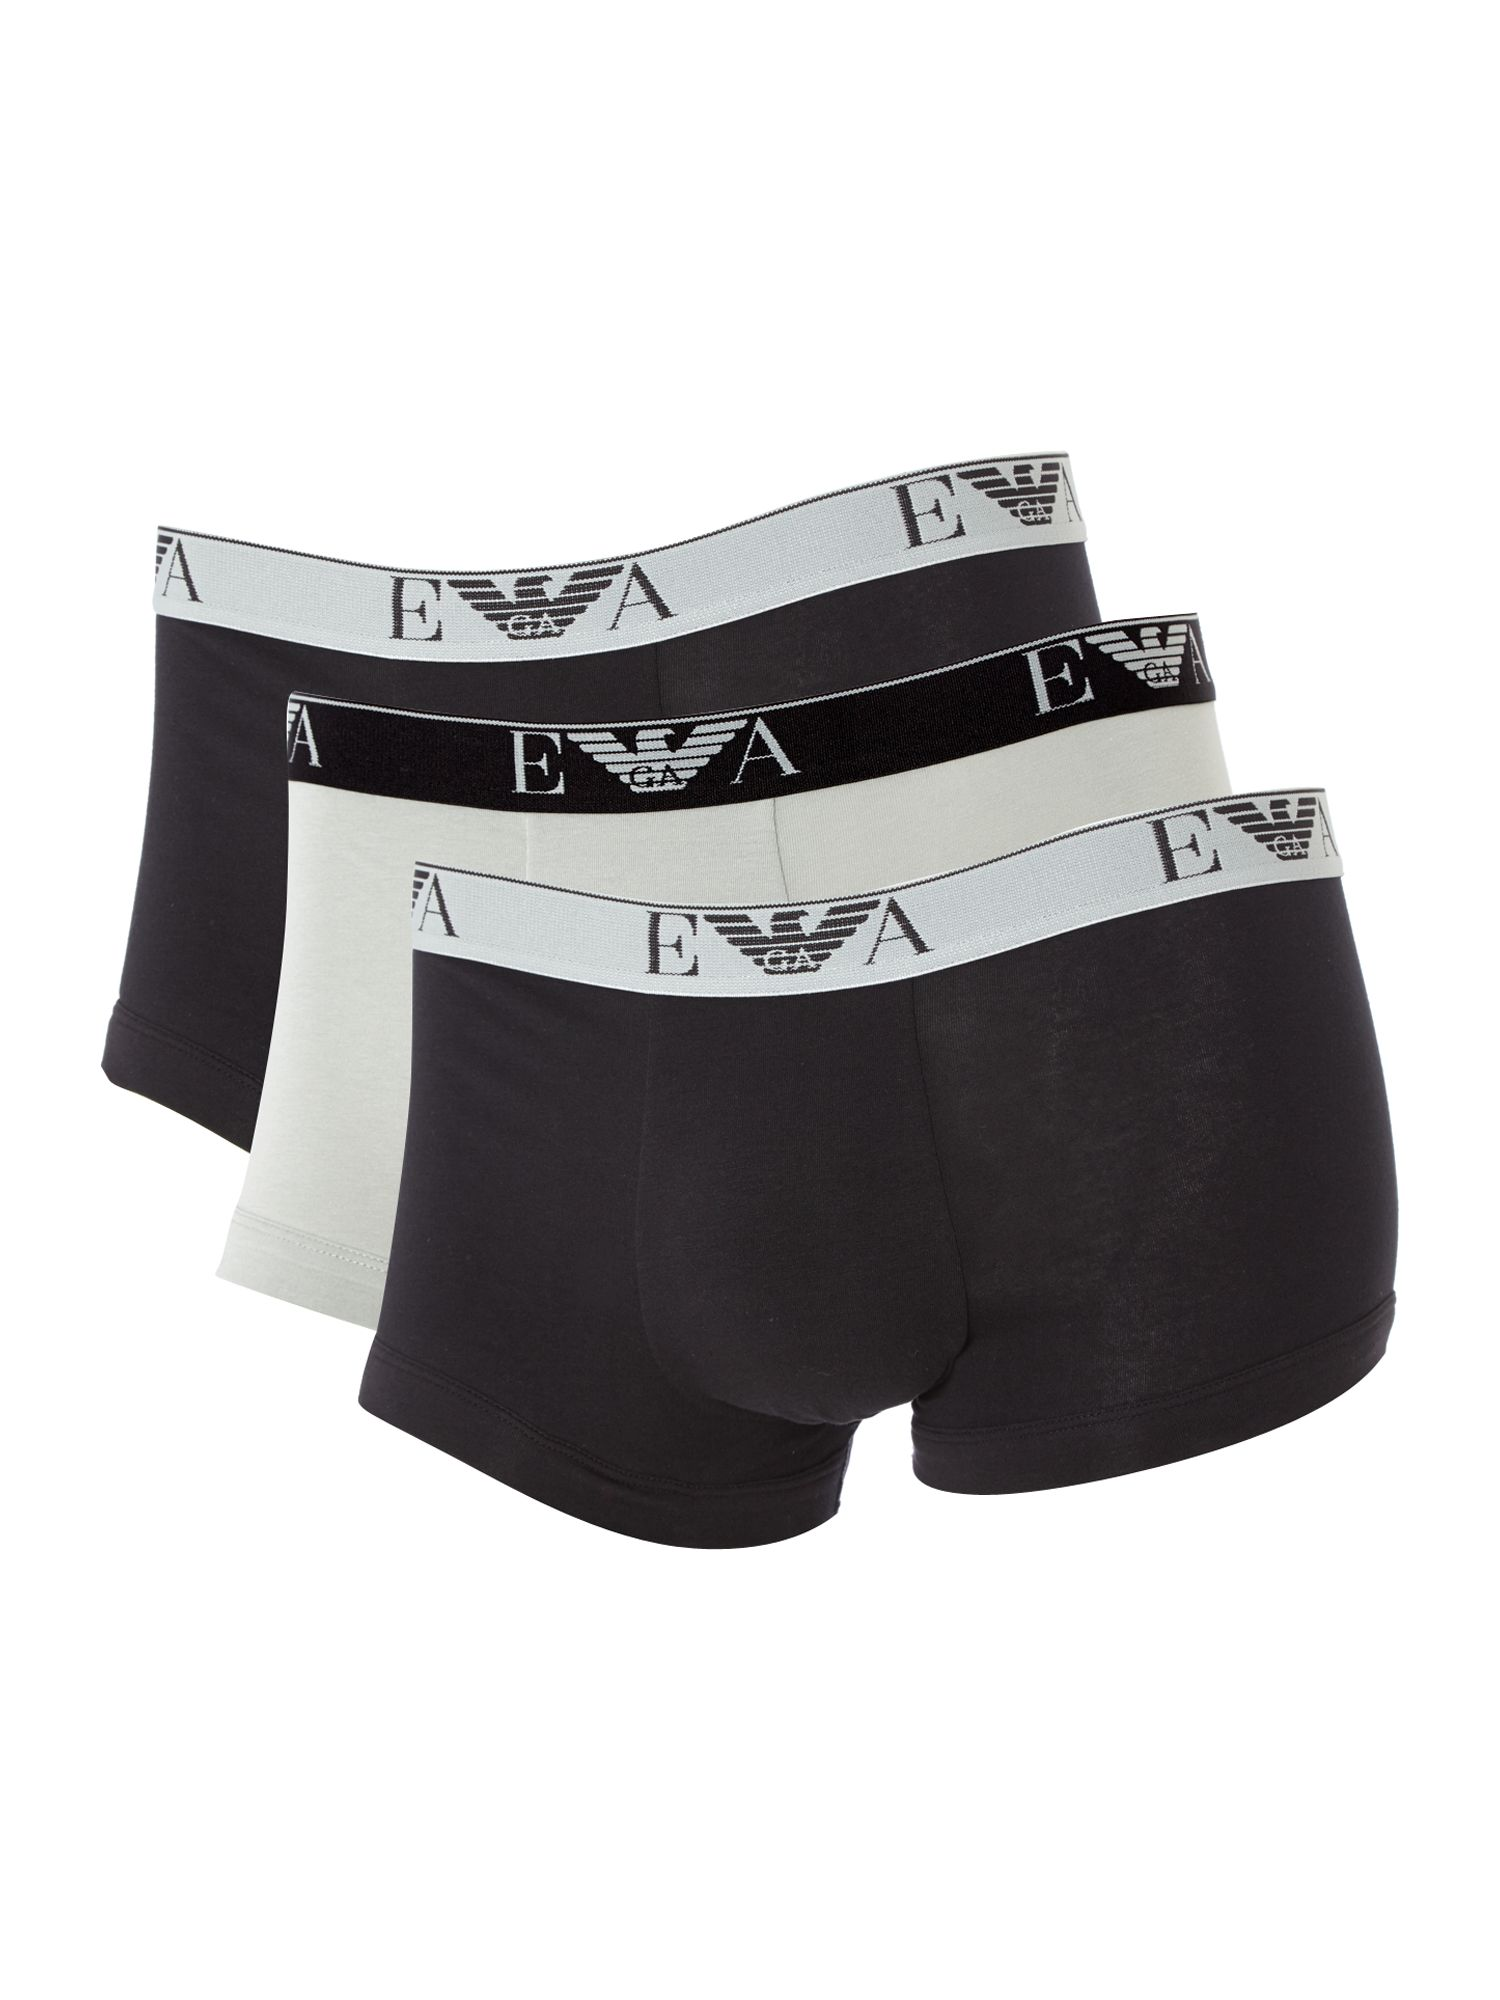 3 pack exclusive underwear trunk